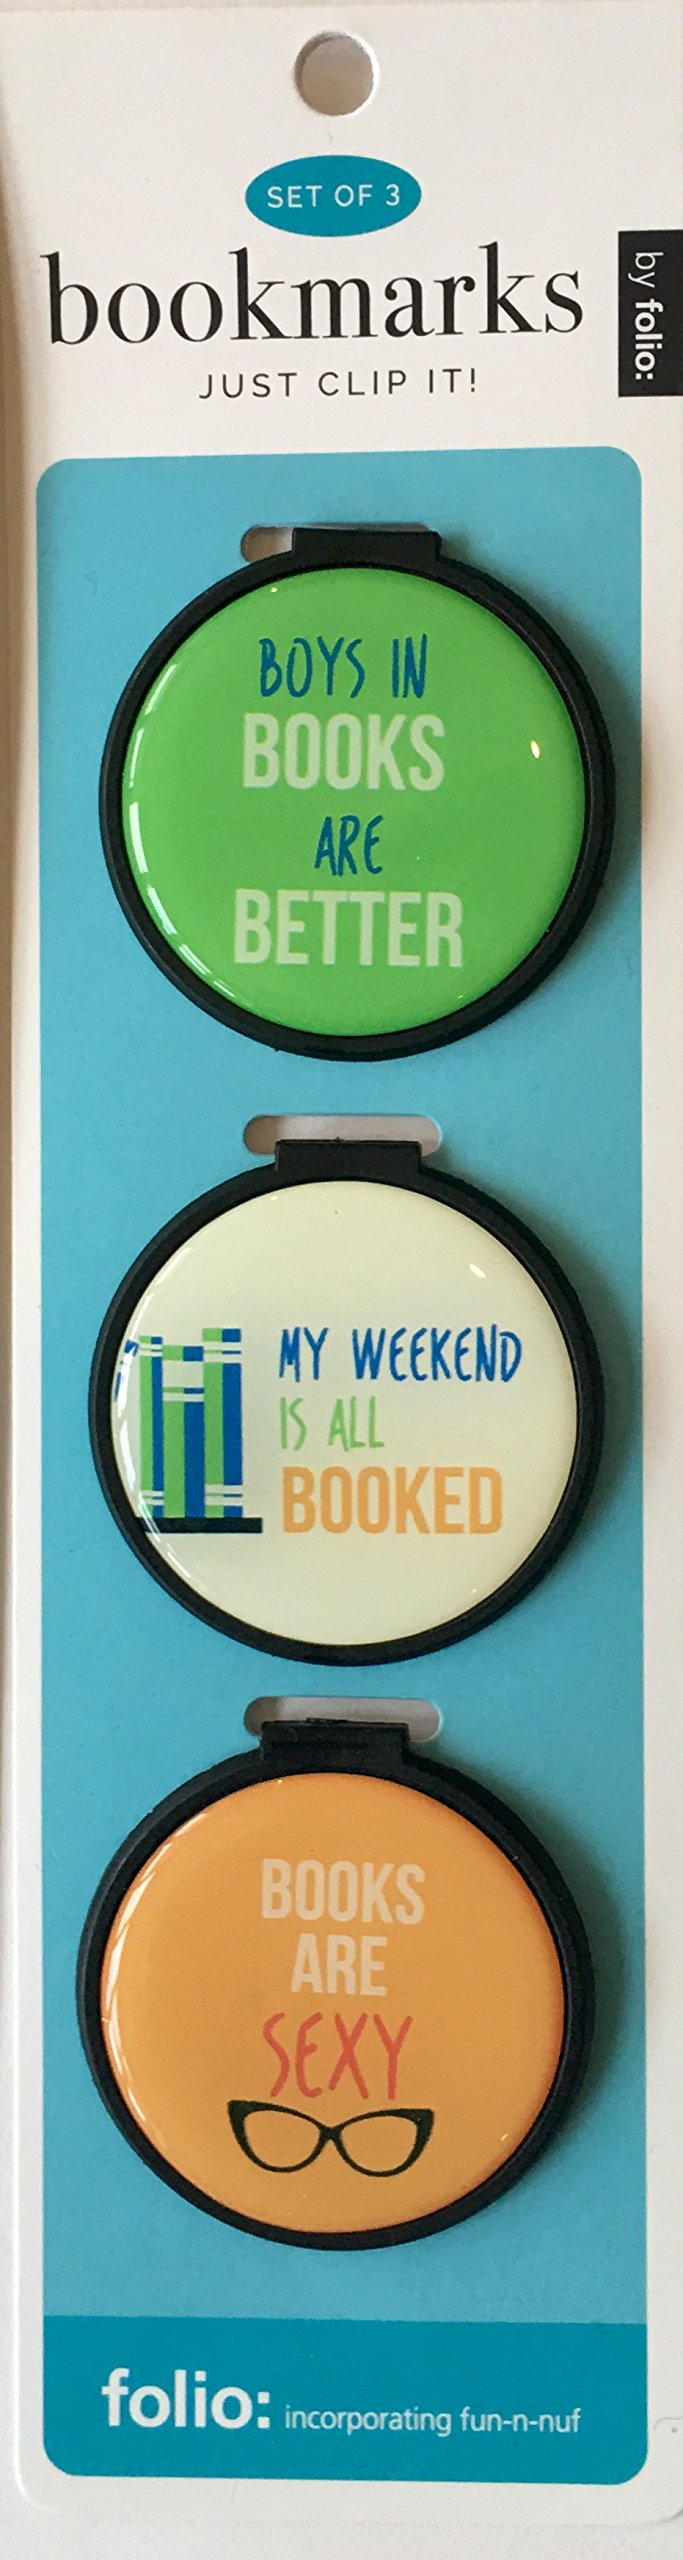 Just Clip it! Quote Bookmarks - (Set of 3 clip over the page markers) - BOYS are BETTER in BOOKS, MY Weekend is all BOOKED, BOOKS are SEXY!